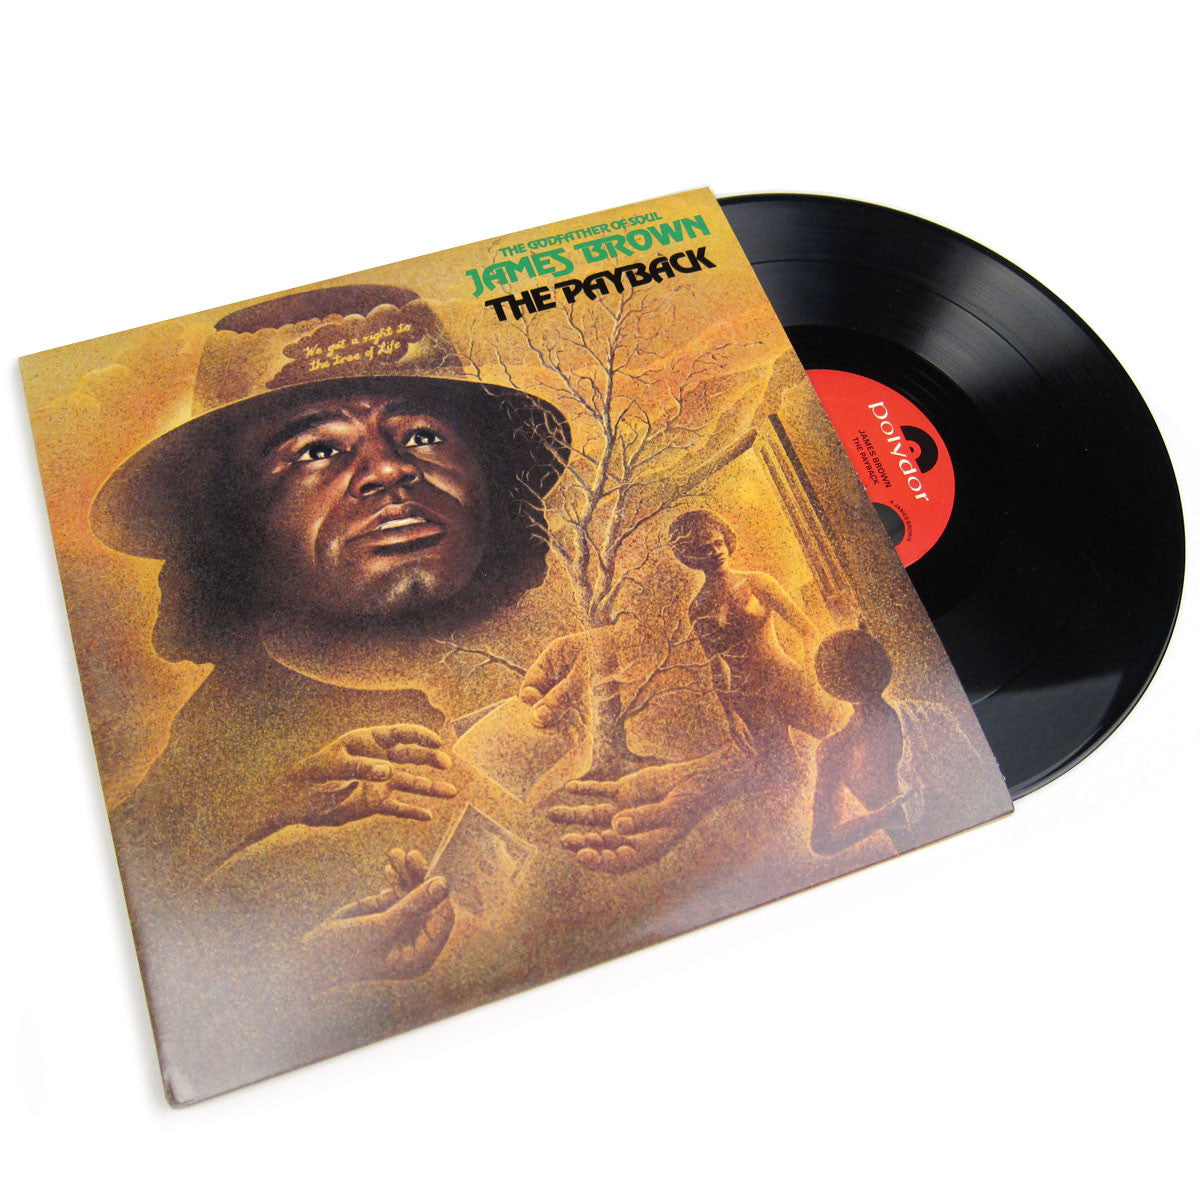 James Brown: The Payback Vinyl 2LP